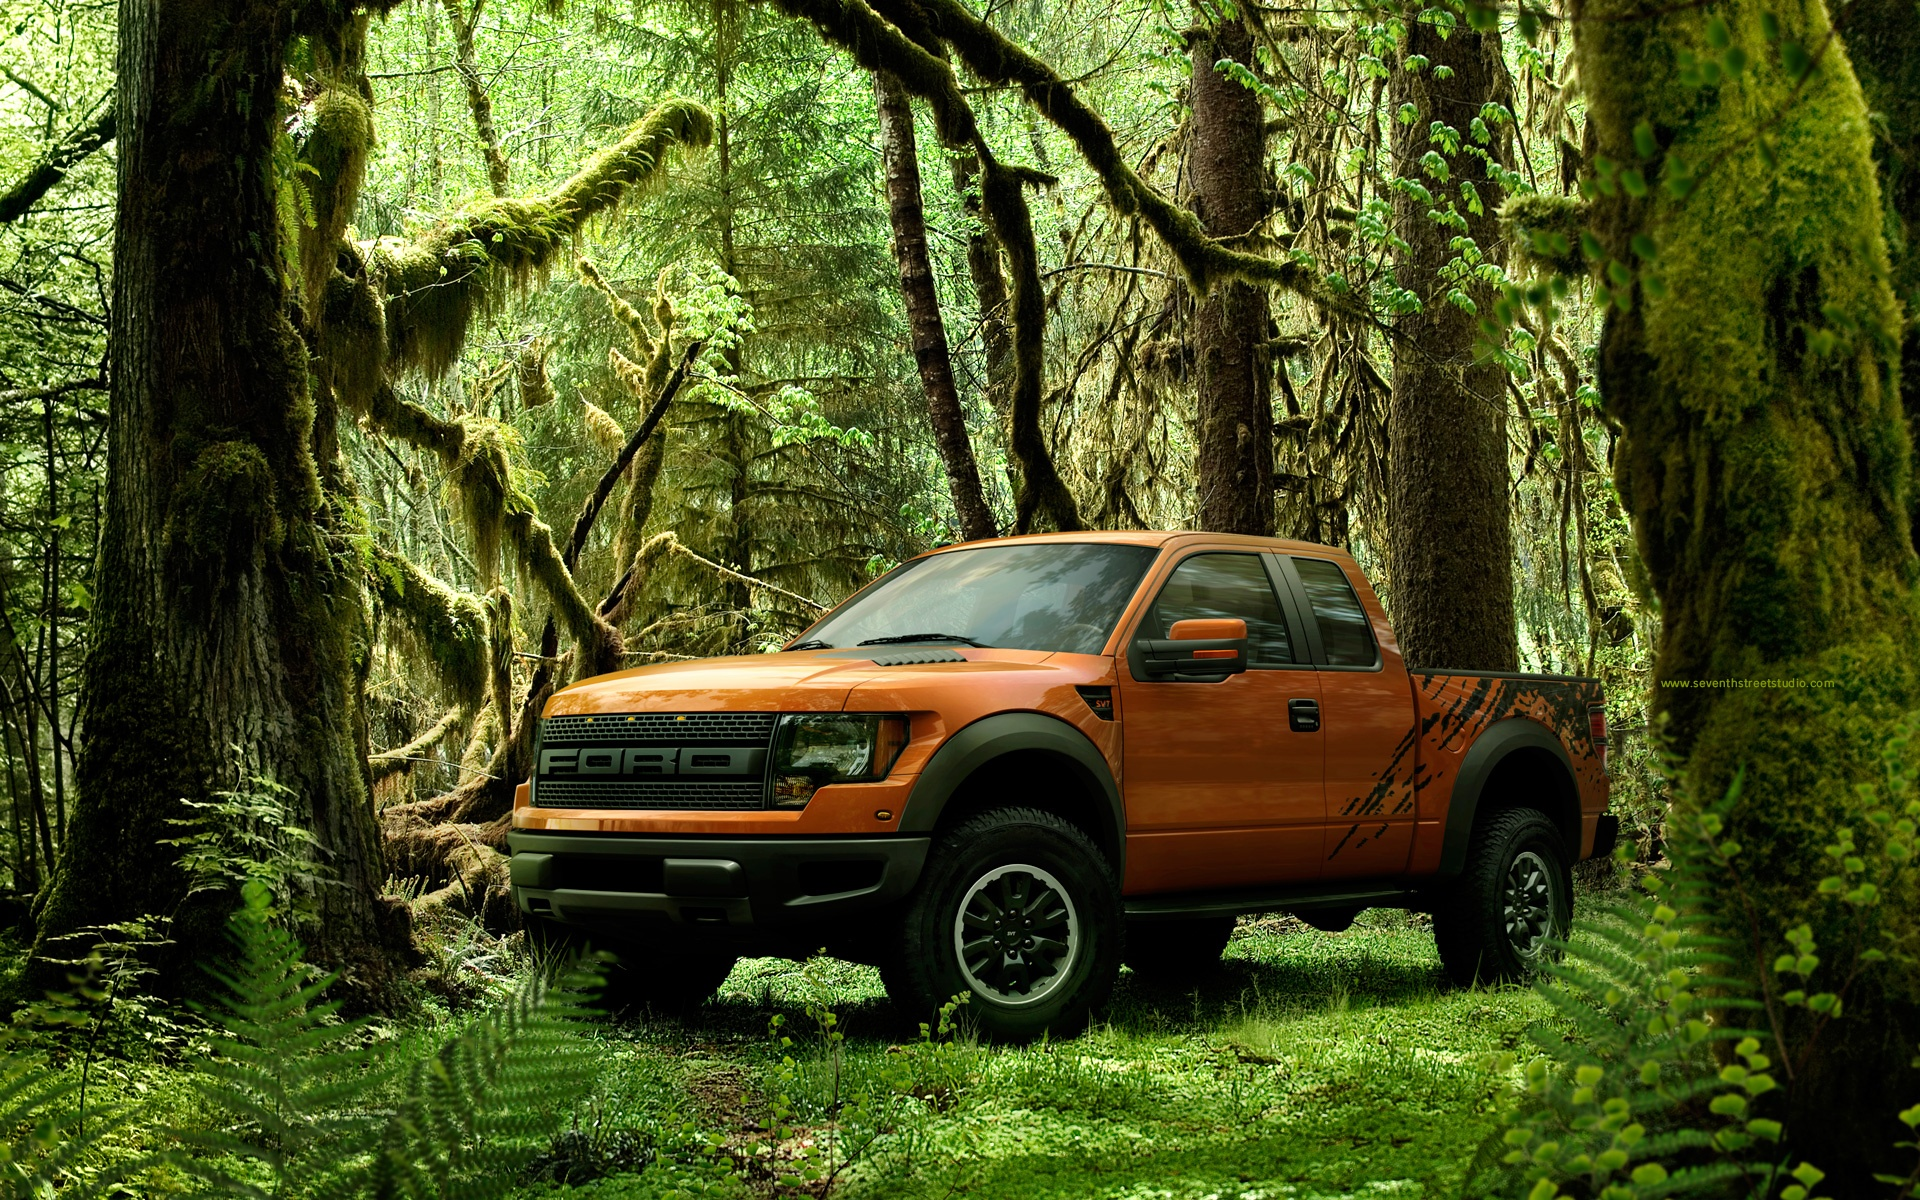 Ford Raptor Wallpapers In Jpg Format For Free Download